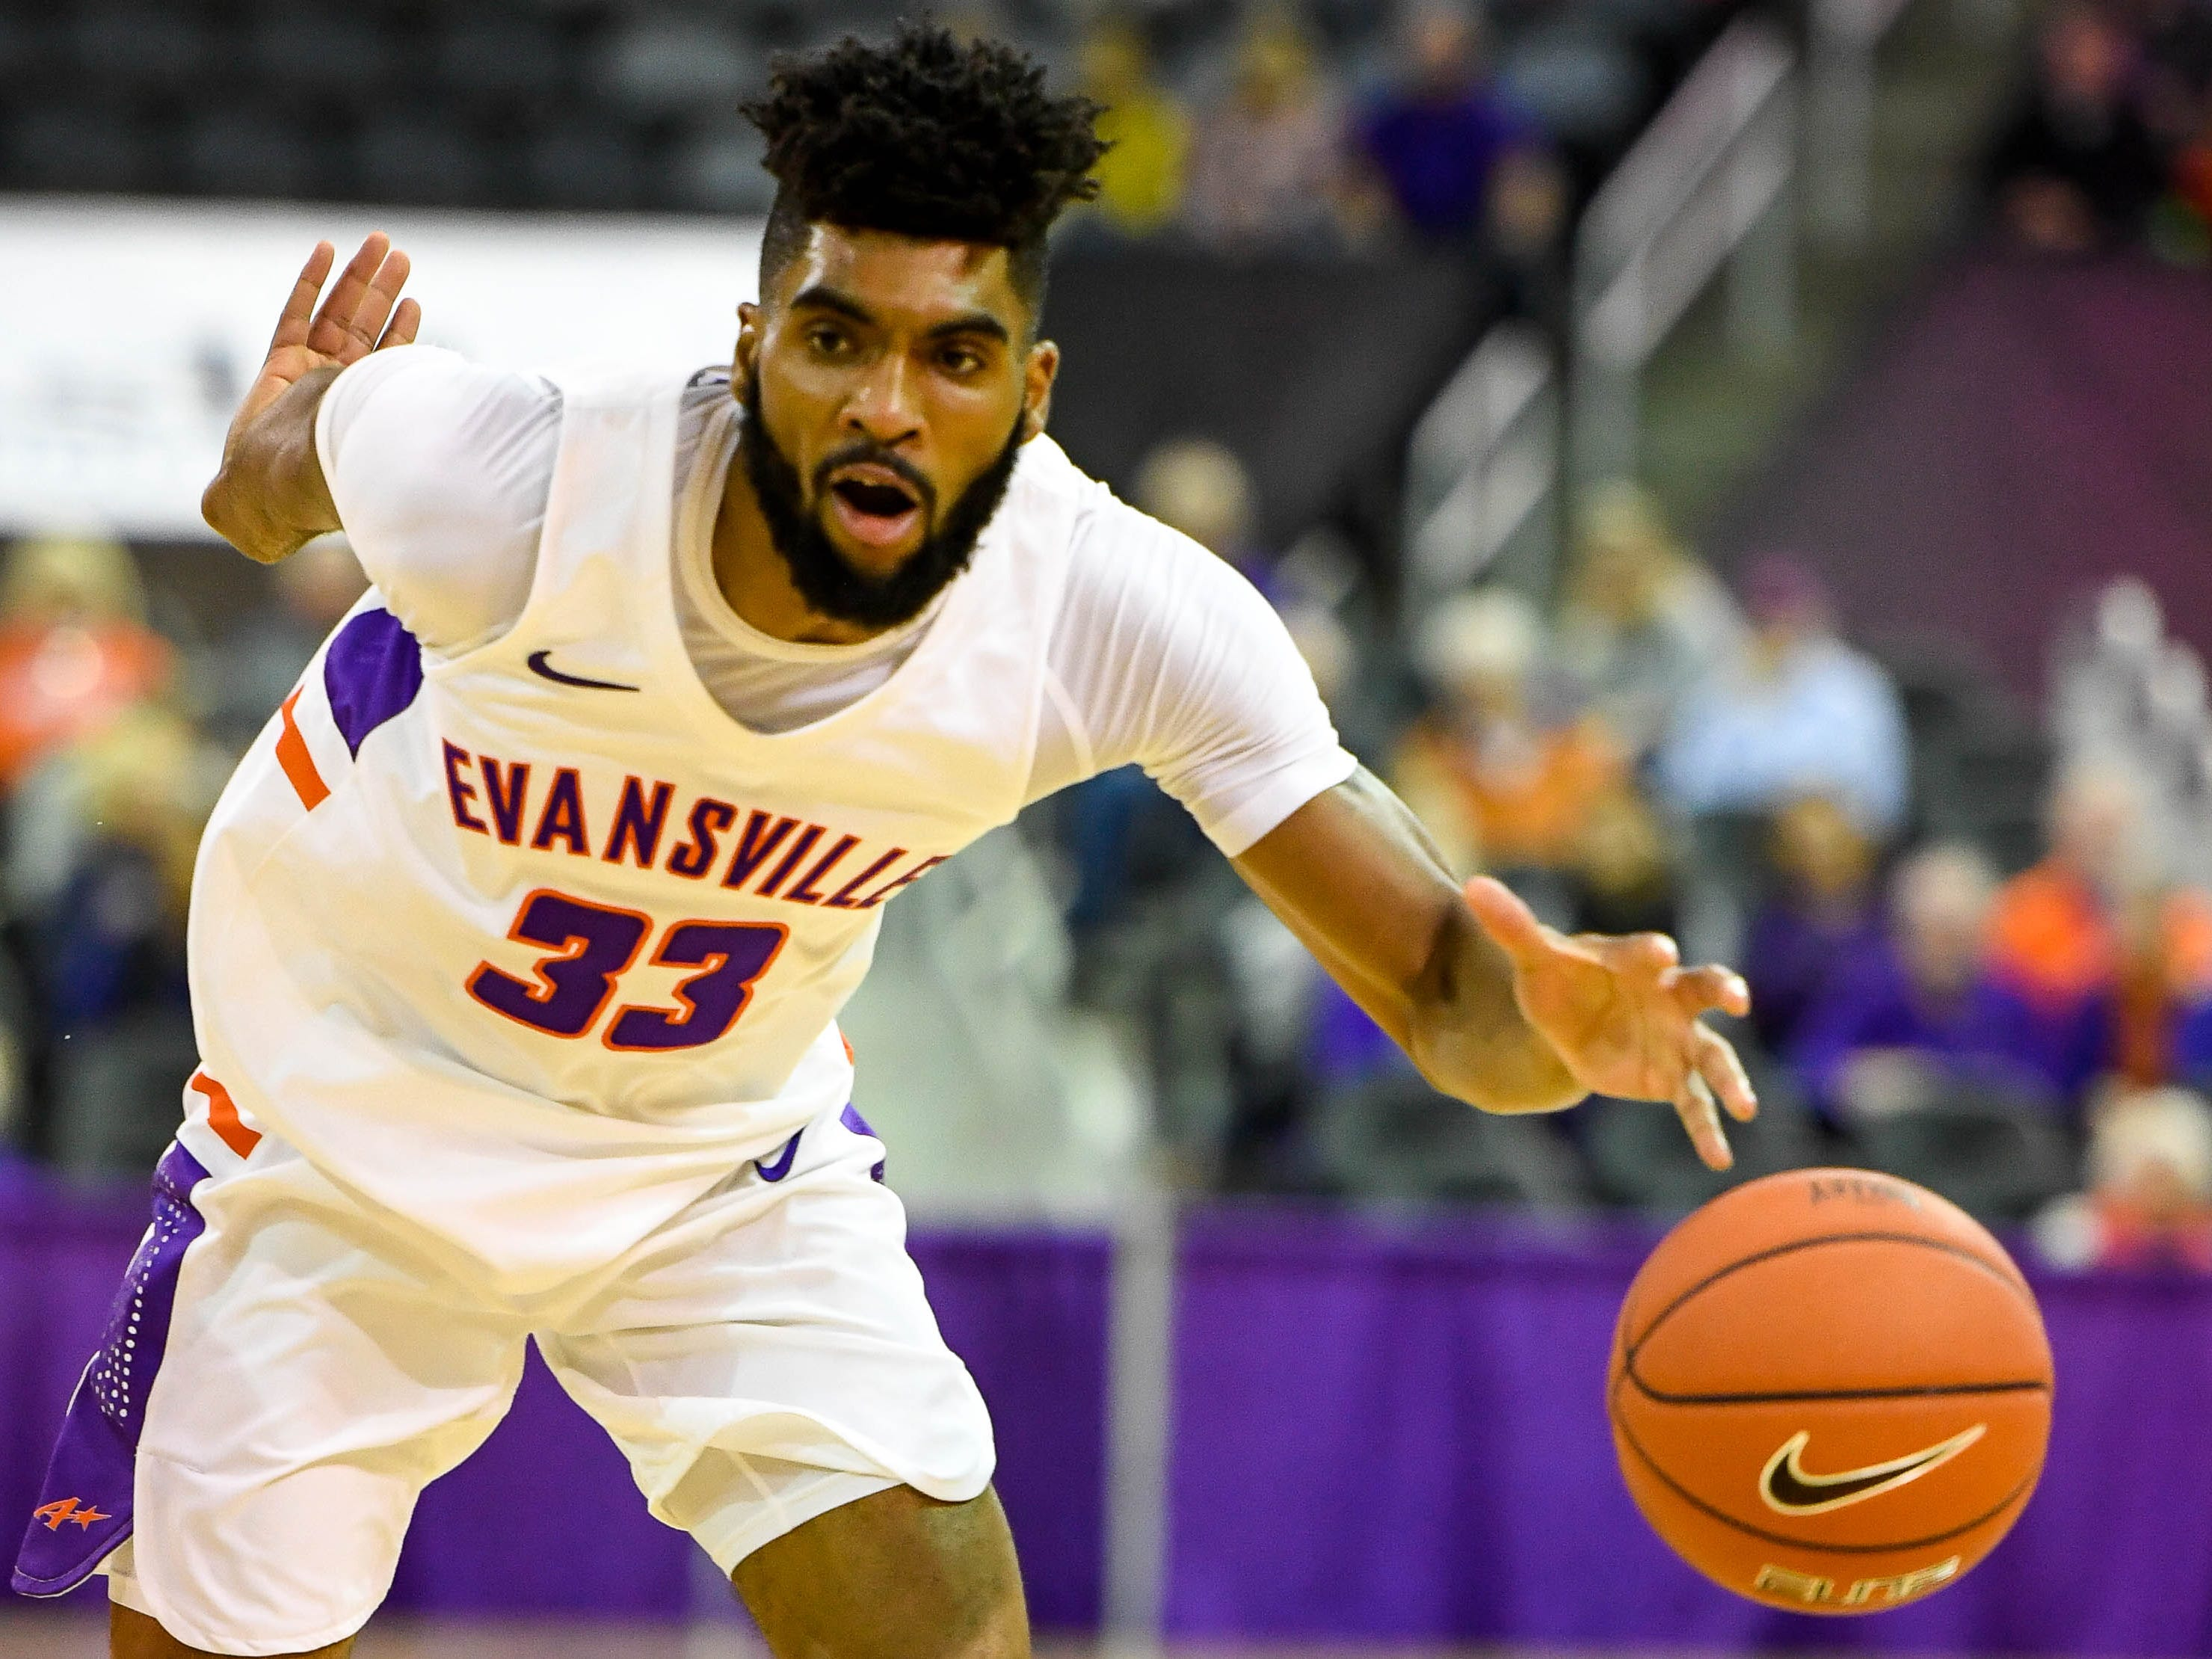 University of Evansville's K.J. Riley (33) pushes the ball as the University of Evansville Purple Aces play the New Mexico Highlands Cowboys in a exhibition game at the Ford Center Saturday, November 3, 2018.